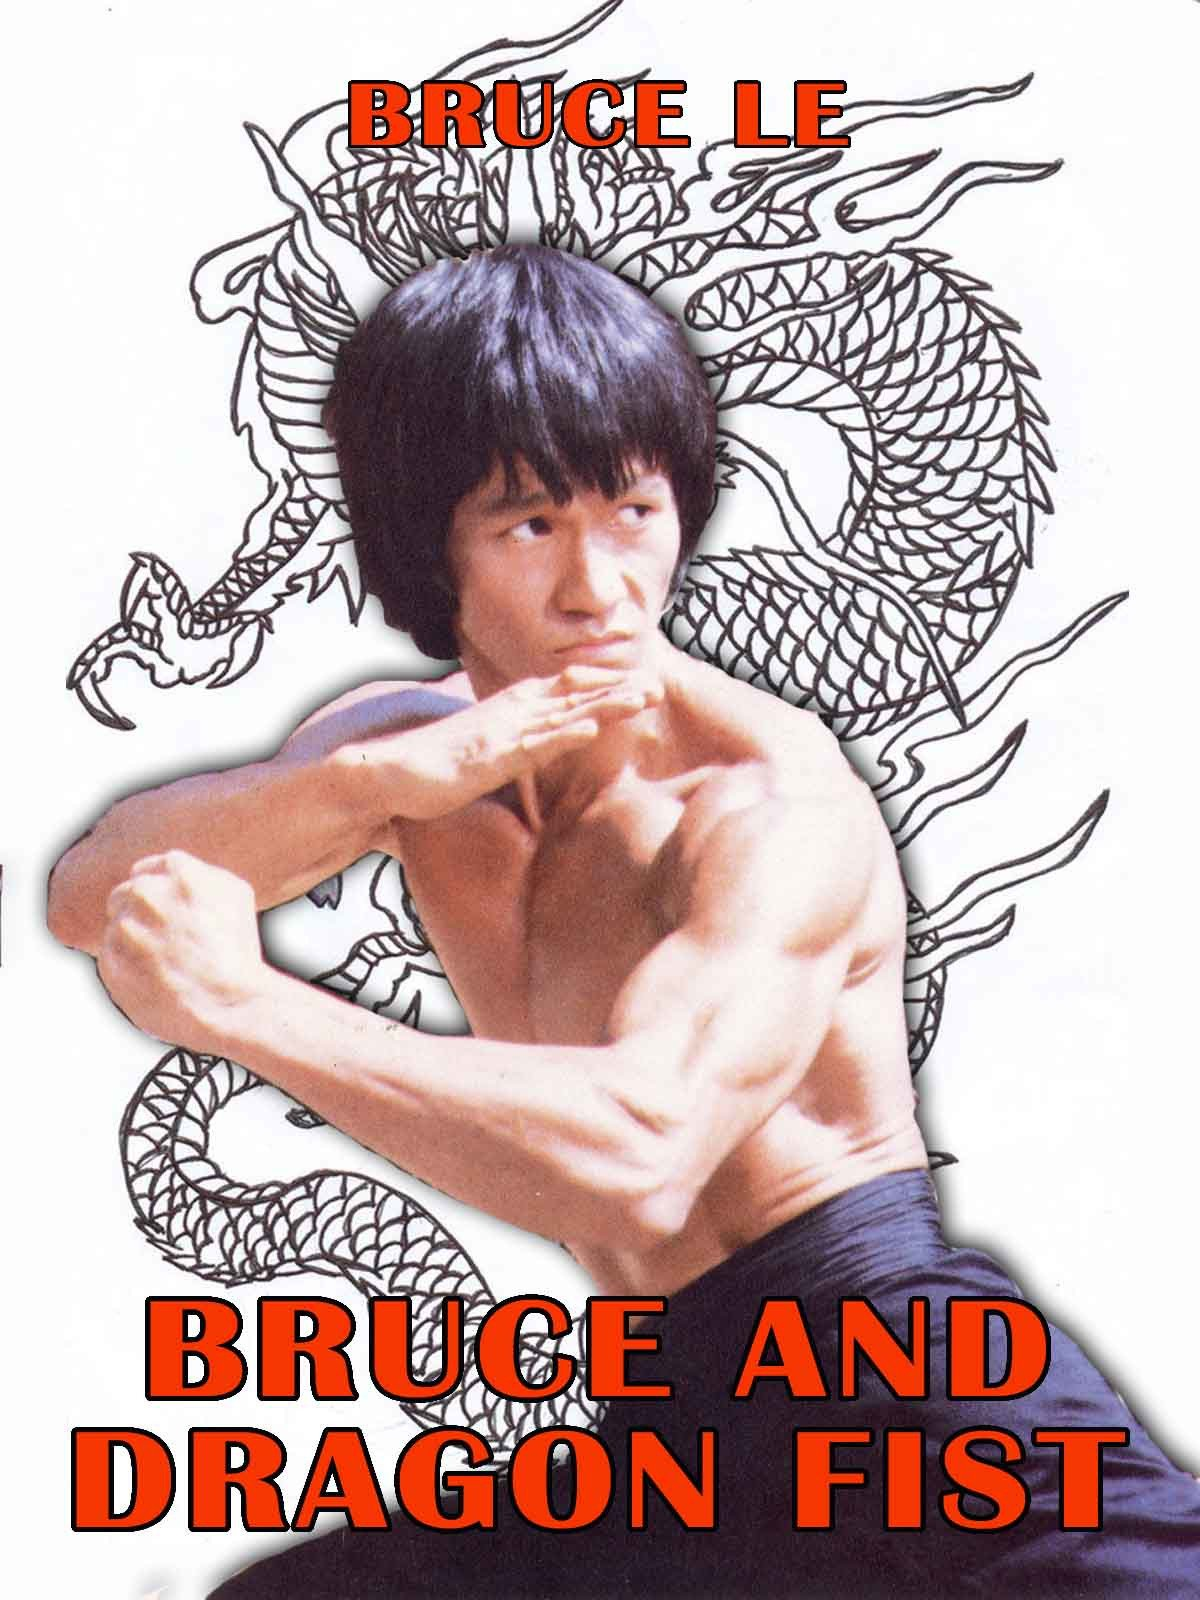 Bruce and Dragon Fist